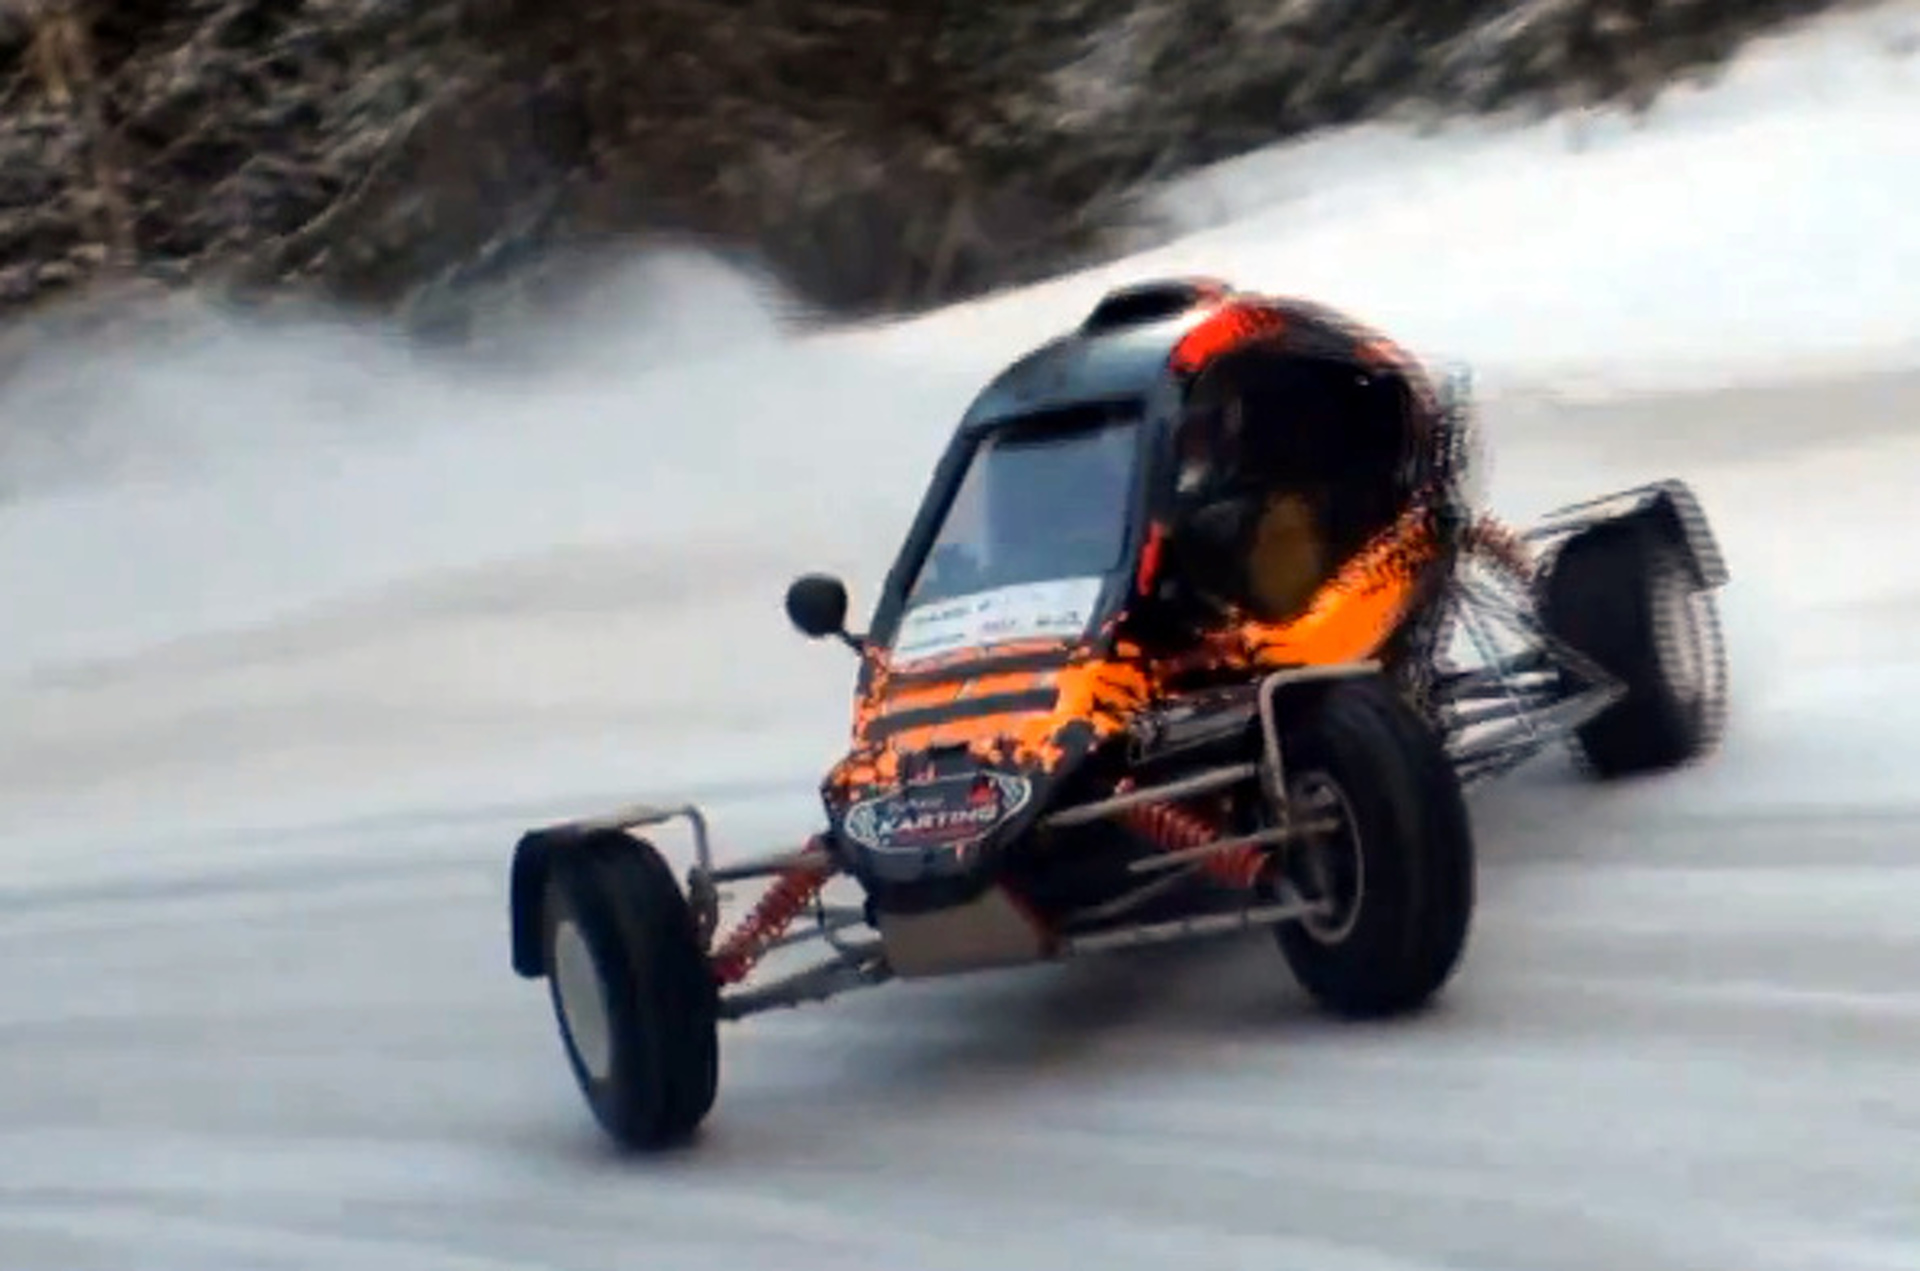 Finland Invents New Form of Motorsport